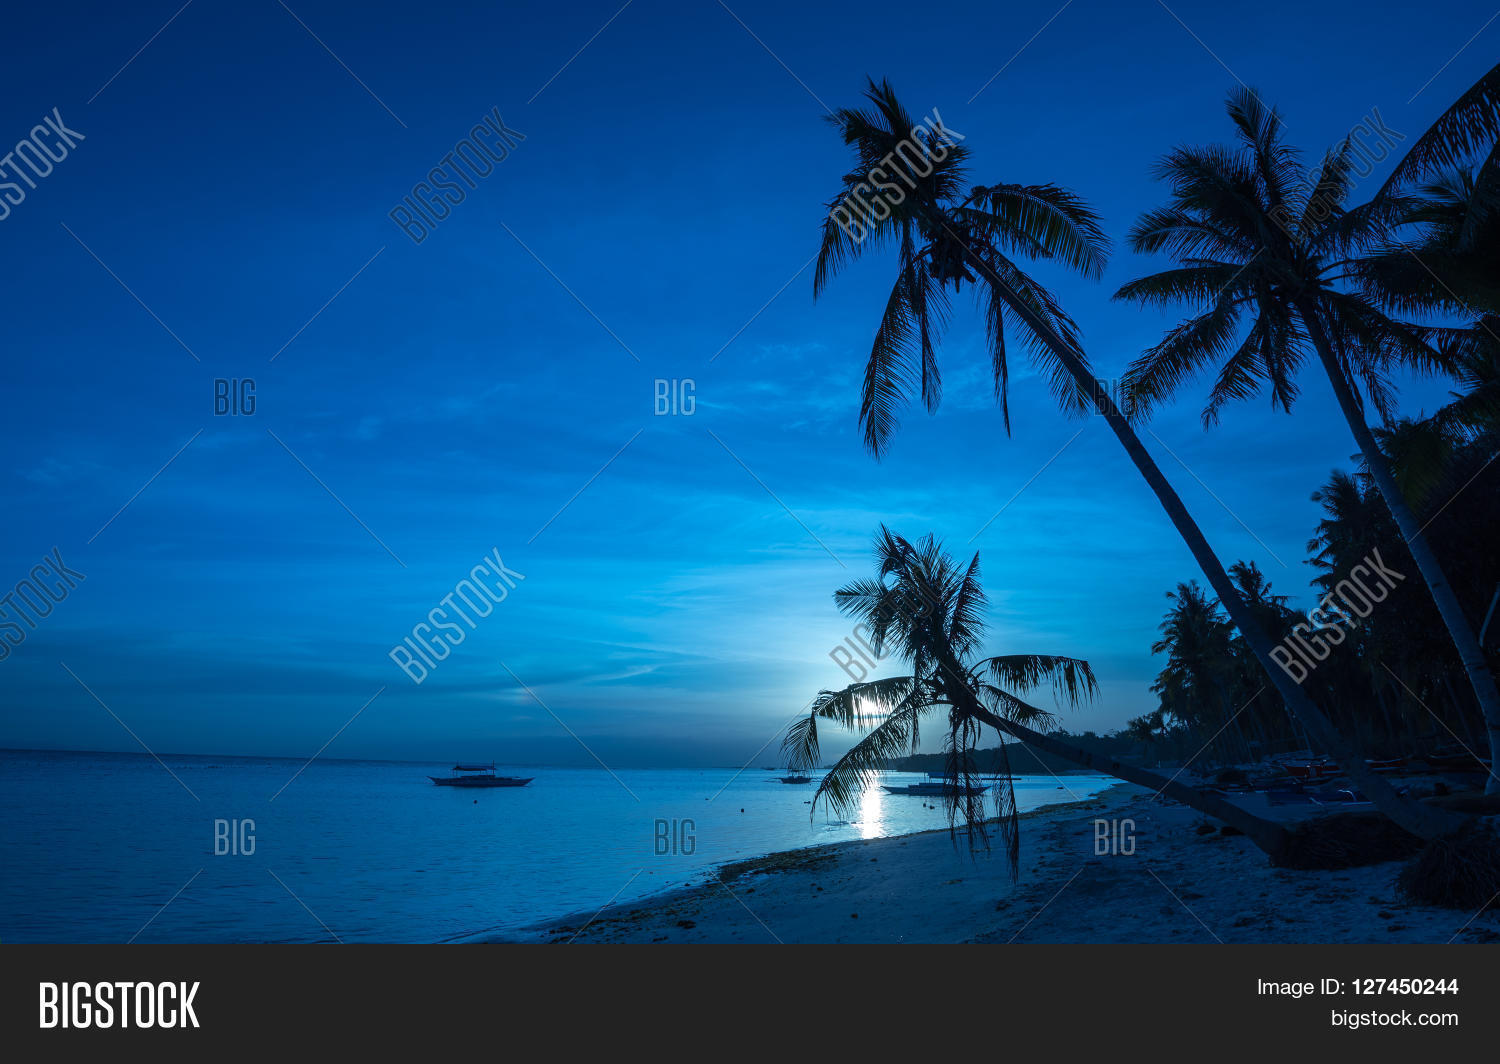 Tropical Beach Image & Photo (Free Trial) | Bigstock